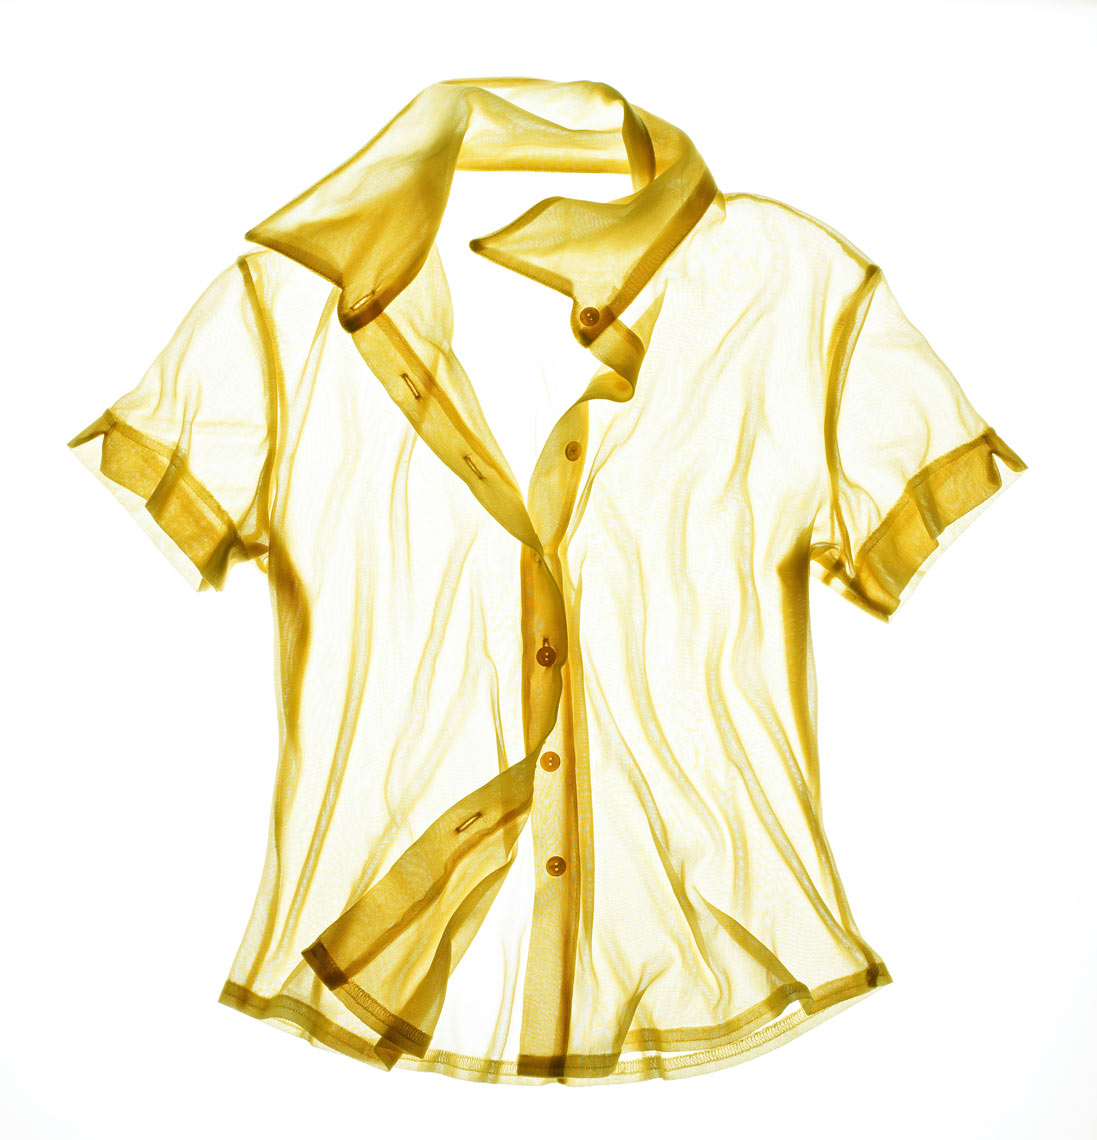 Yellow translucent shirt/underlit/product photography